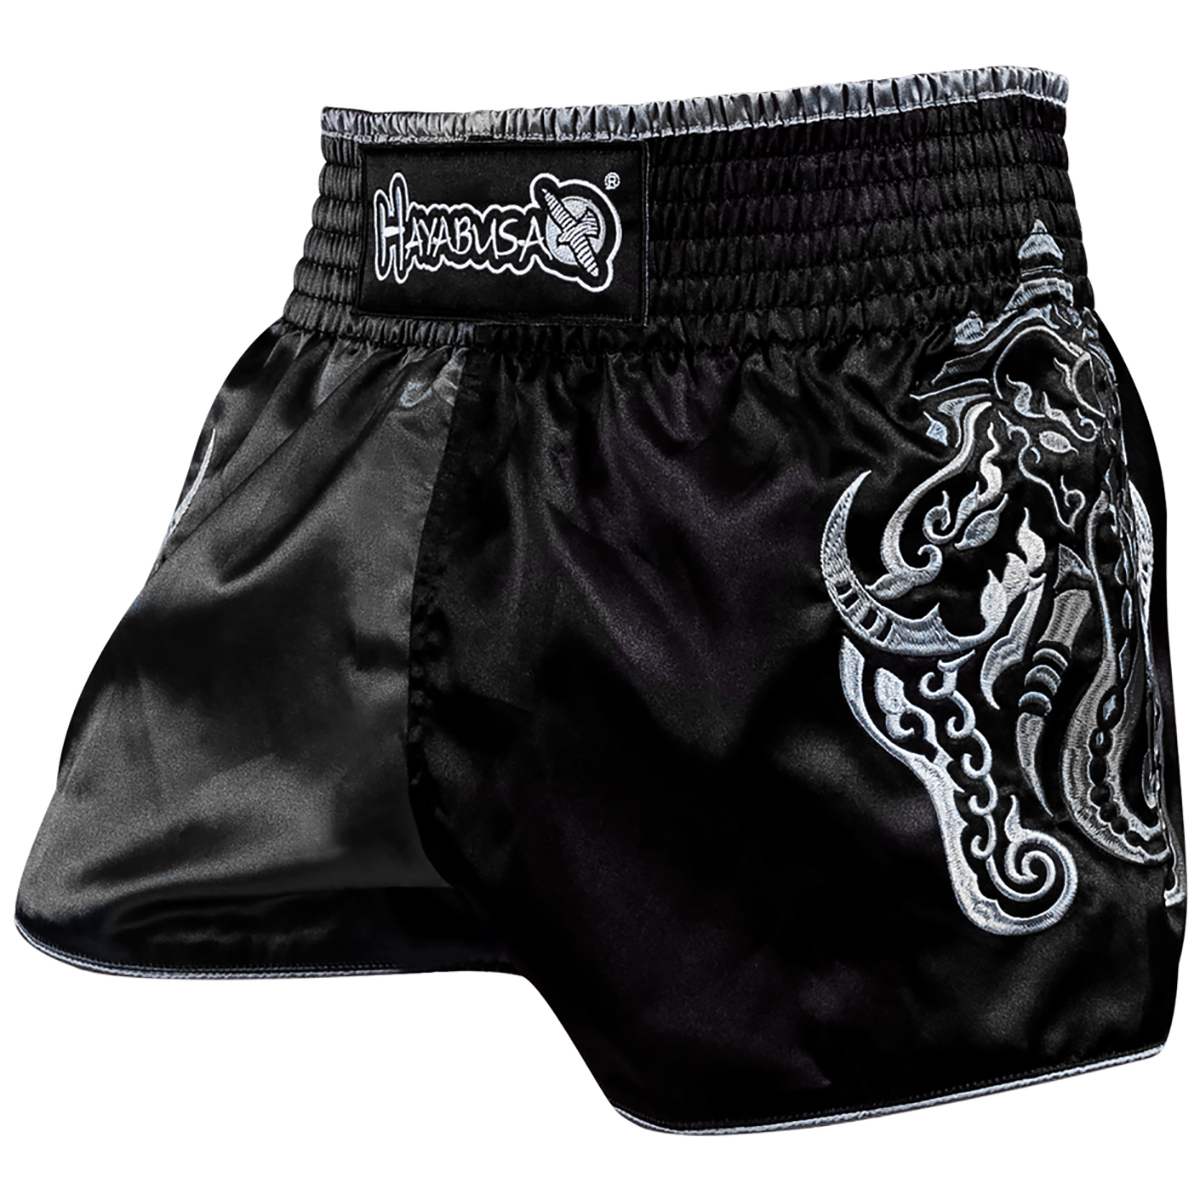 Hayabusa Wisdom Muay Thai Fight Shorts